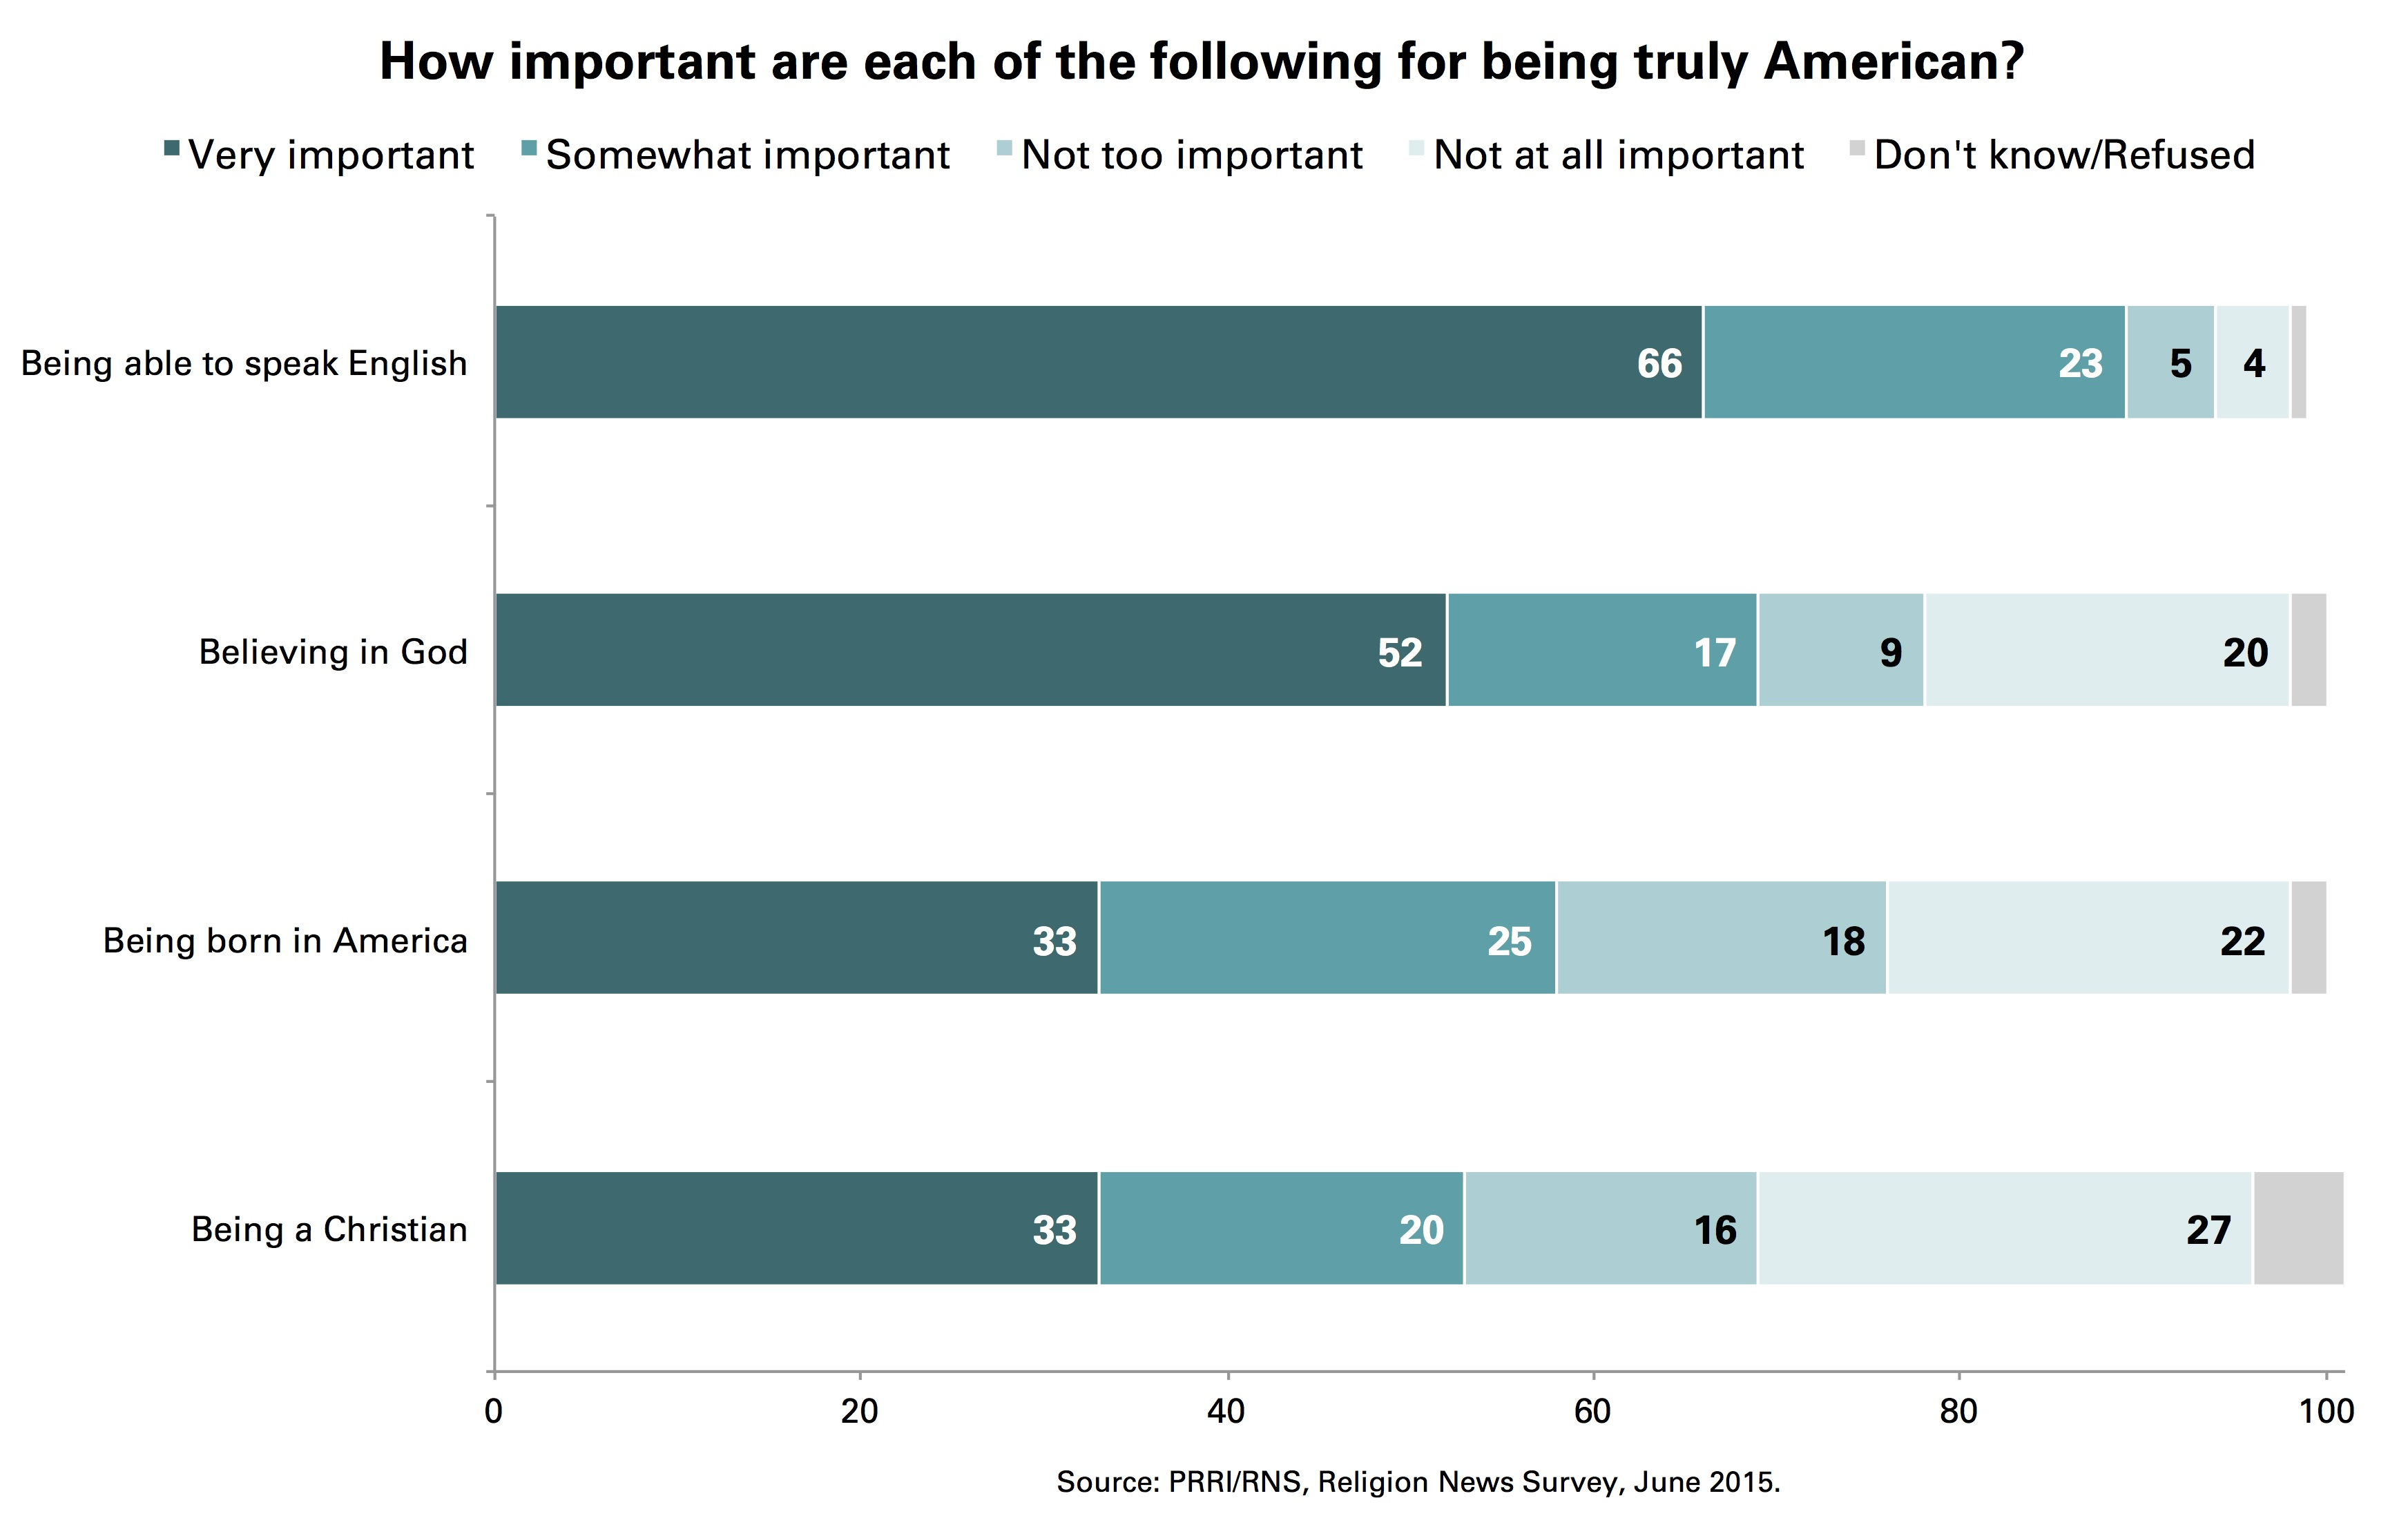 How do people not born in america experience patriotism compared to native born americans?